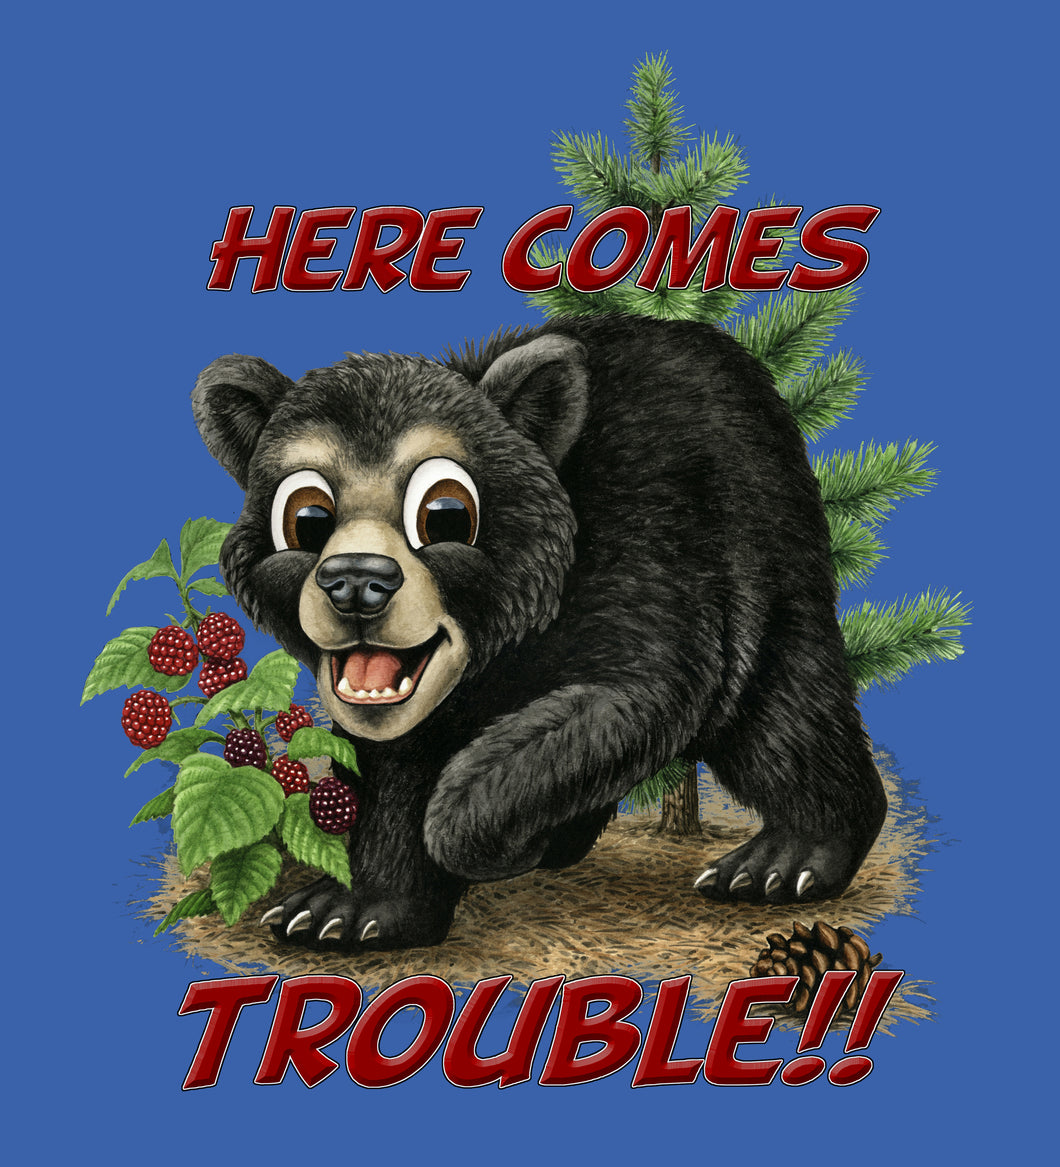 Bear Trouble - painting of a comical bear cub smiling